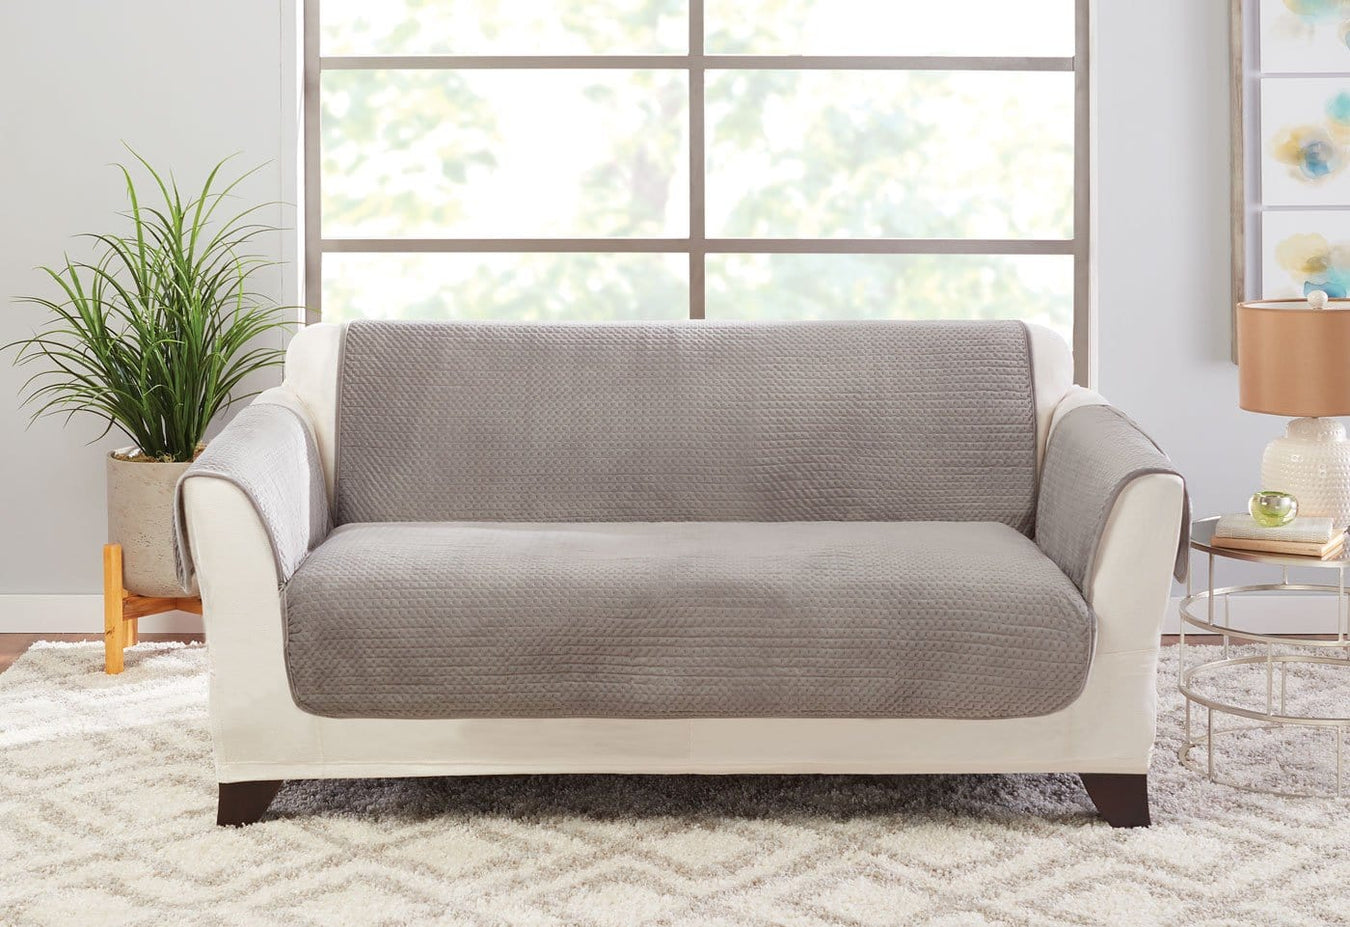 Elegant Pick Stitch Loveseat Furniture Cover